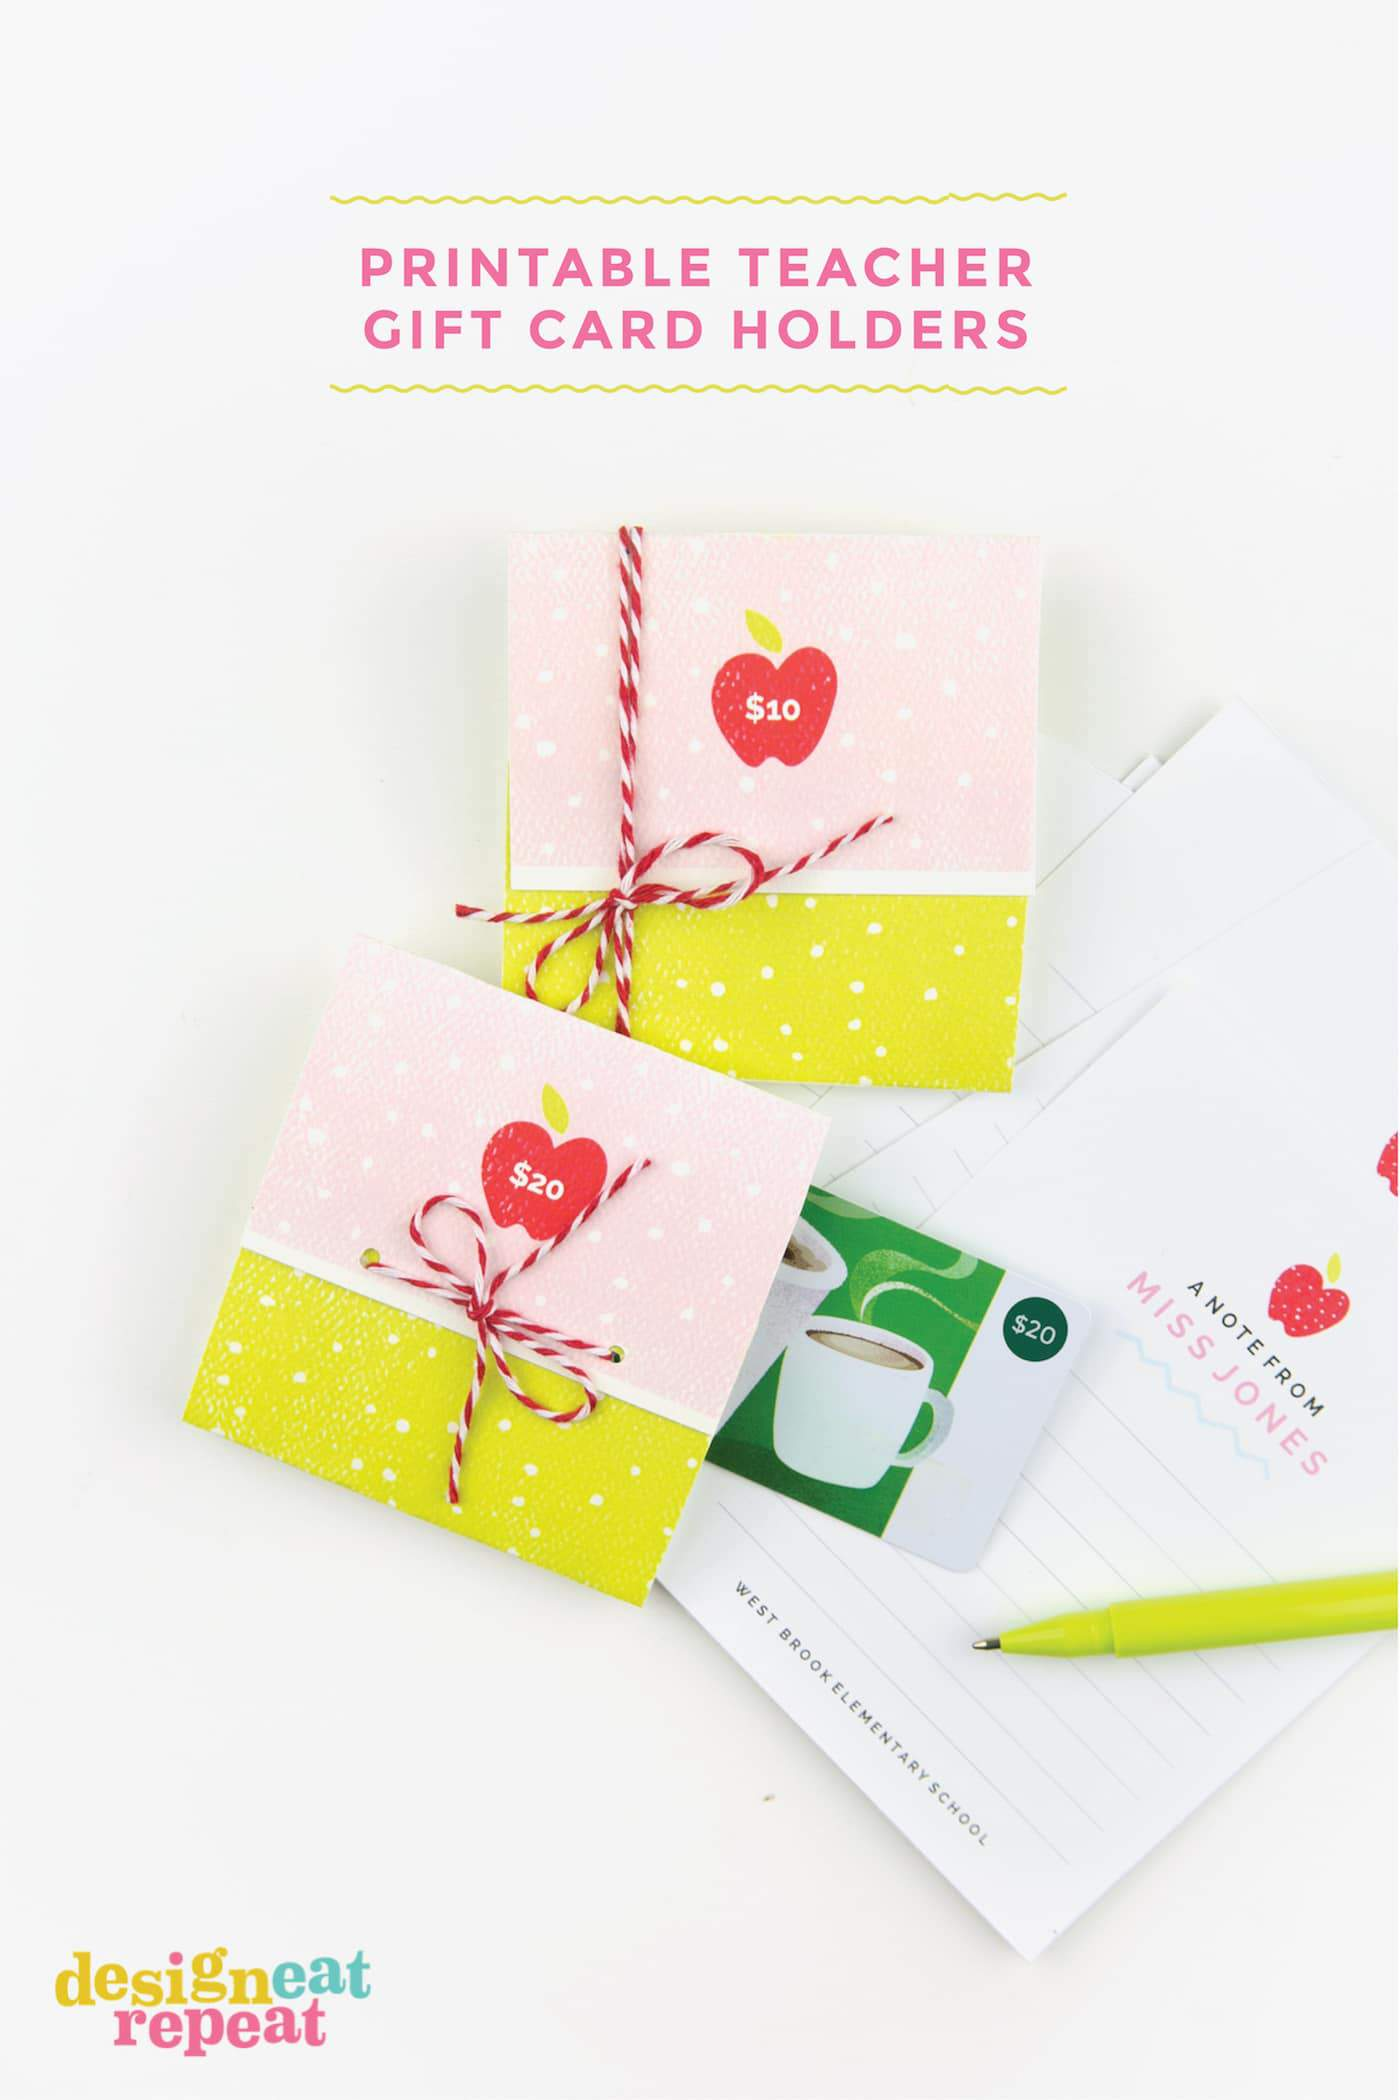 Instead of gifting generic body soaps or apple-themed home decor this year, give your teachers something they really want: money! These printable gift card holders can be personalized with the dollar amount and have lots of space inside to write a personal note! #avery #printables #teachergiftidea